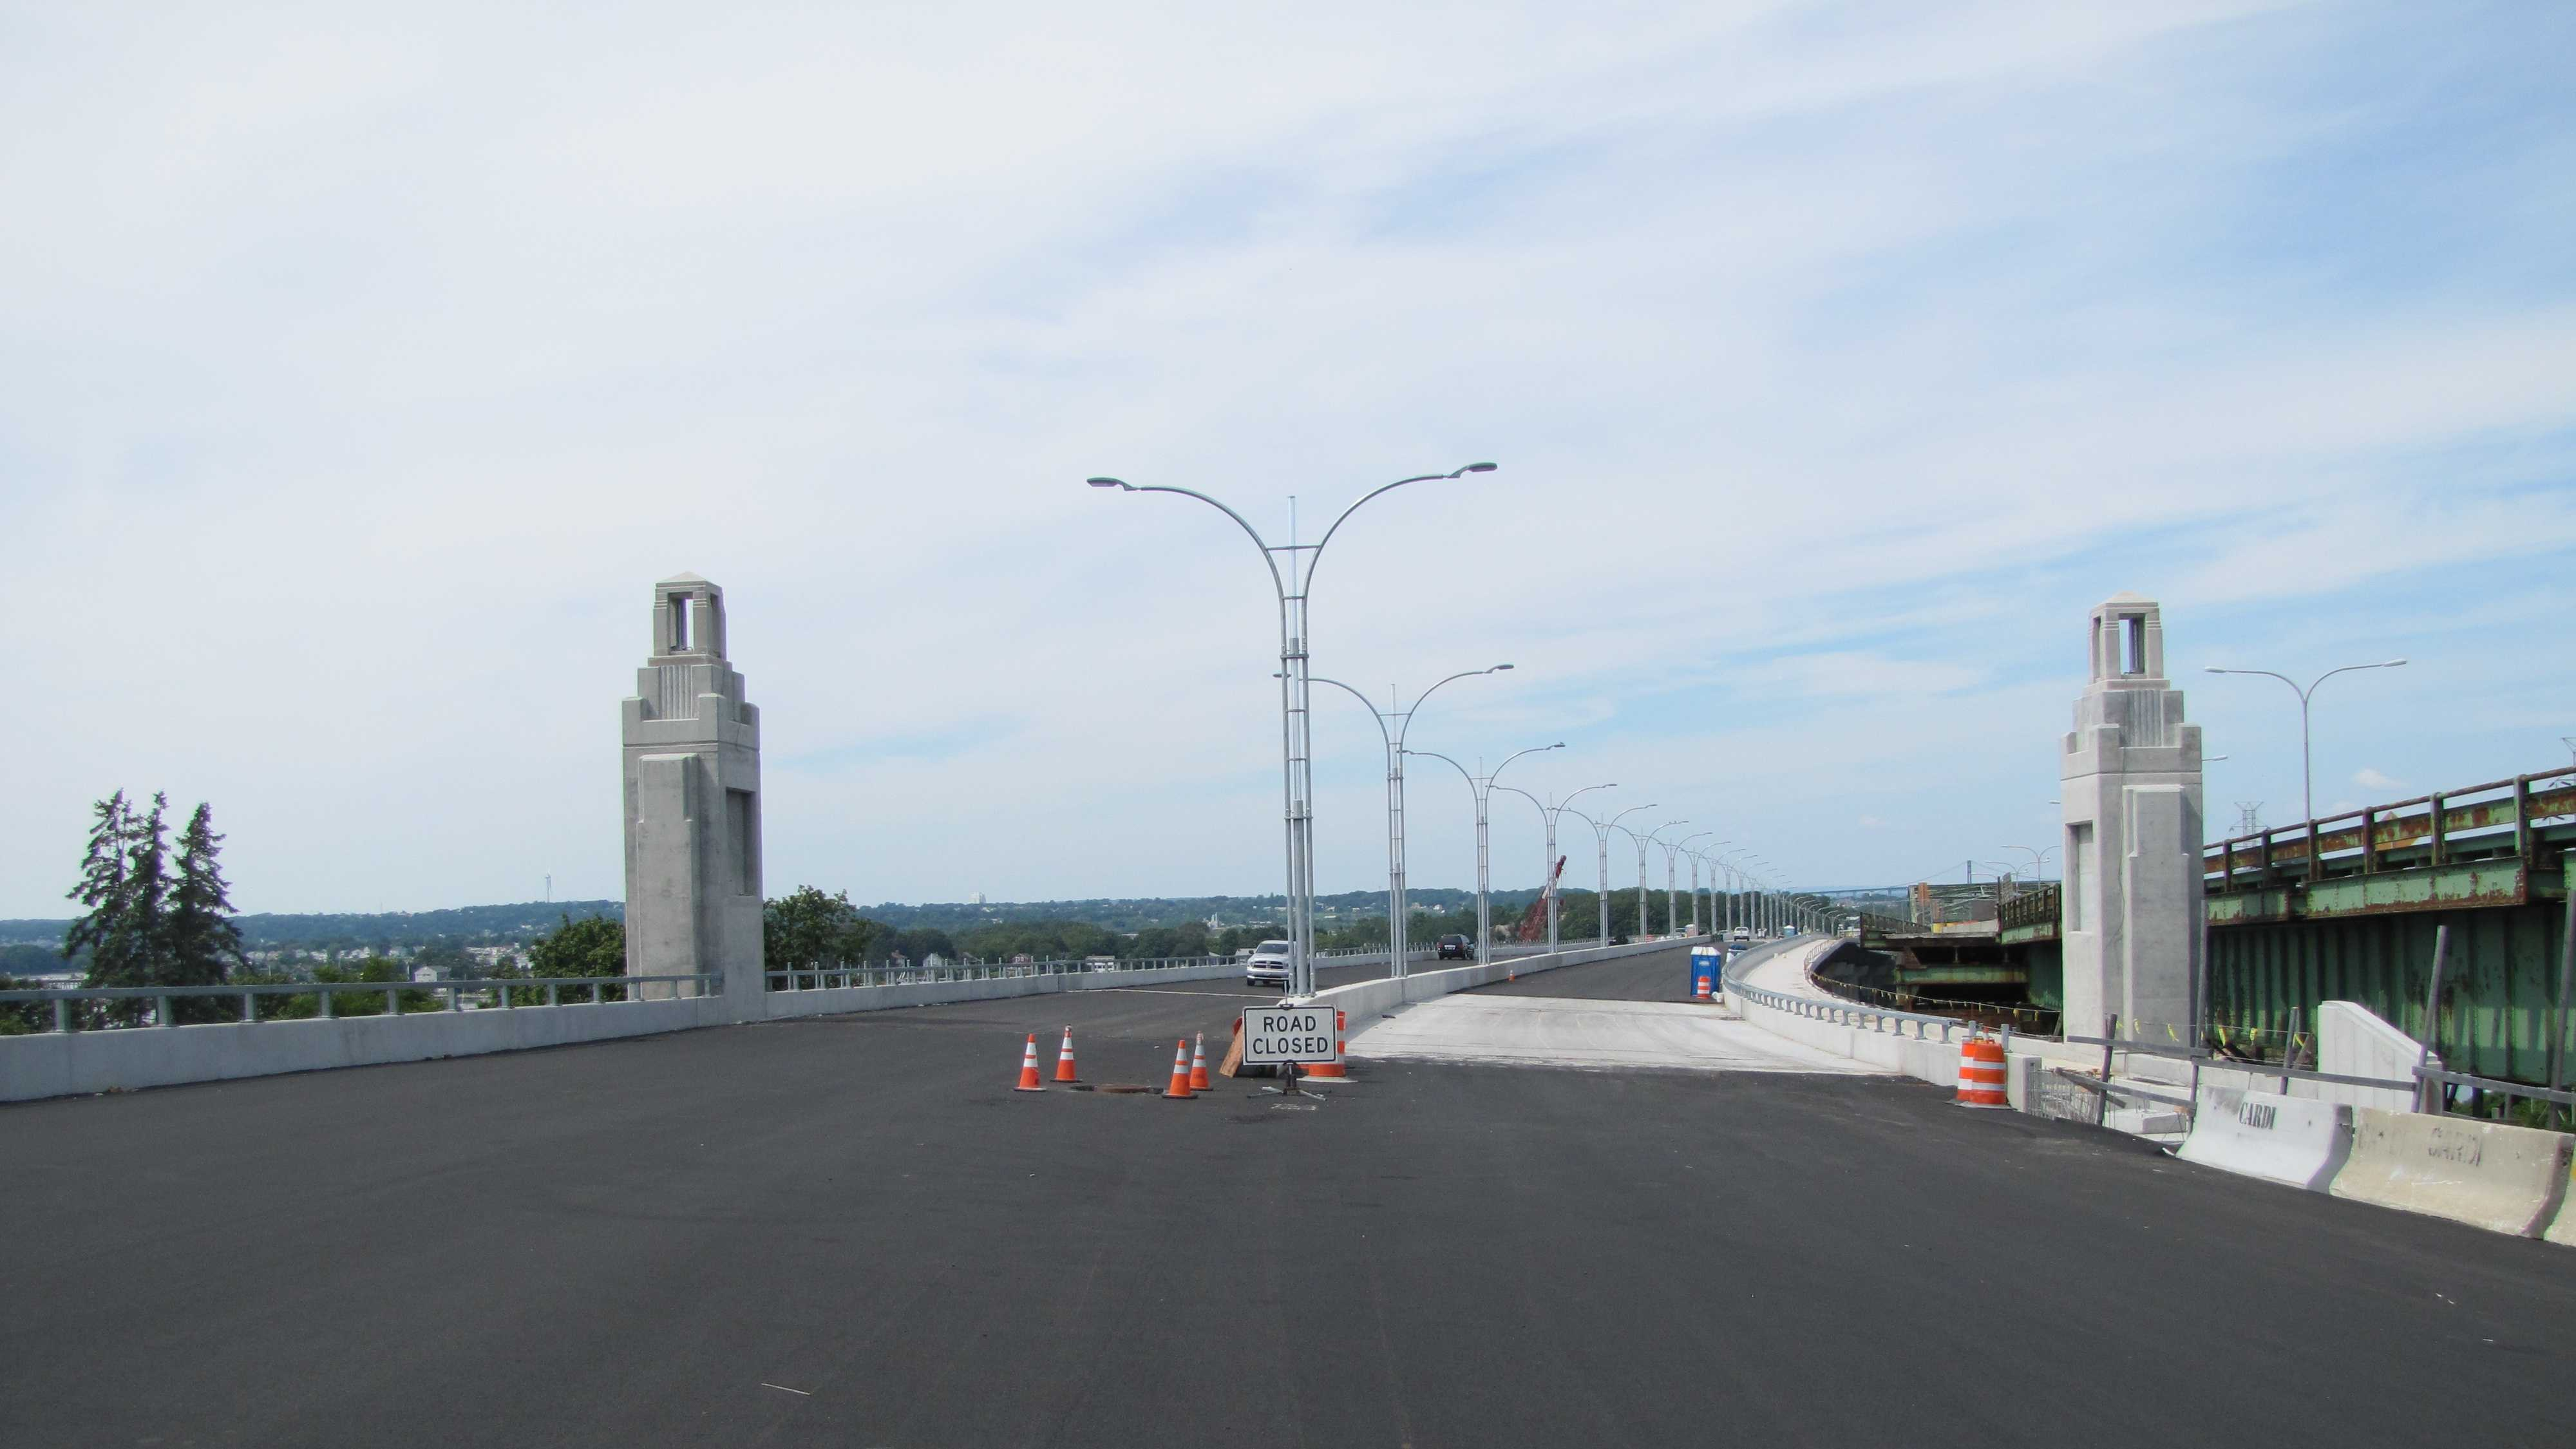 This file photo shows the just completed Sakonnet bridge in Rhode Island.